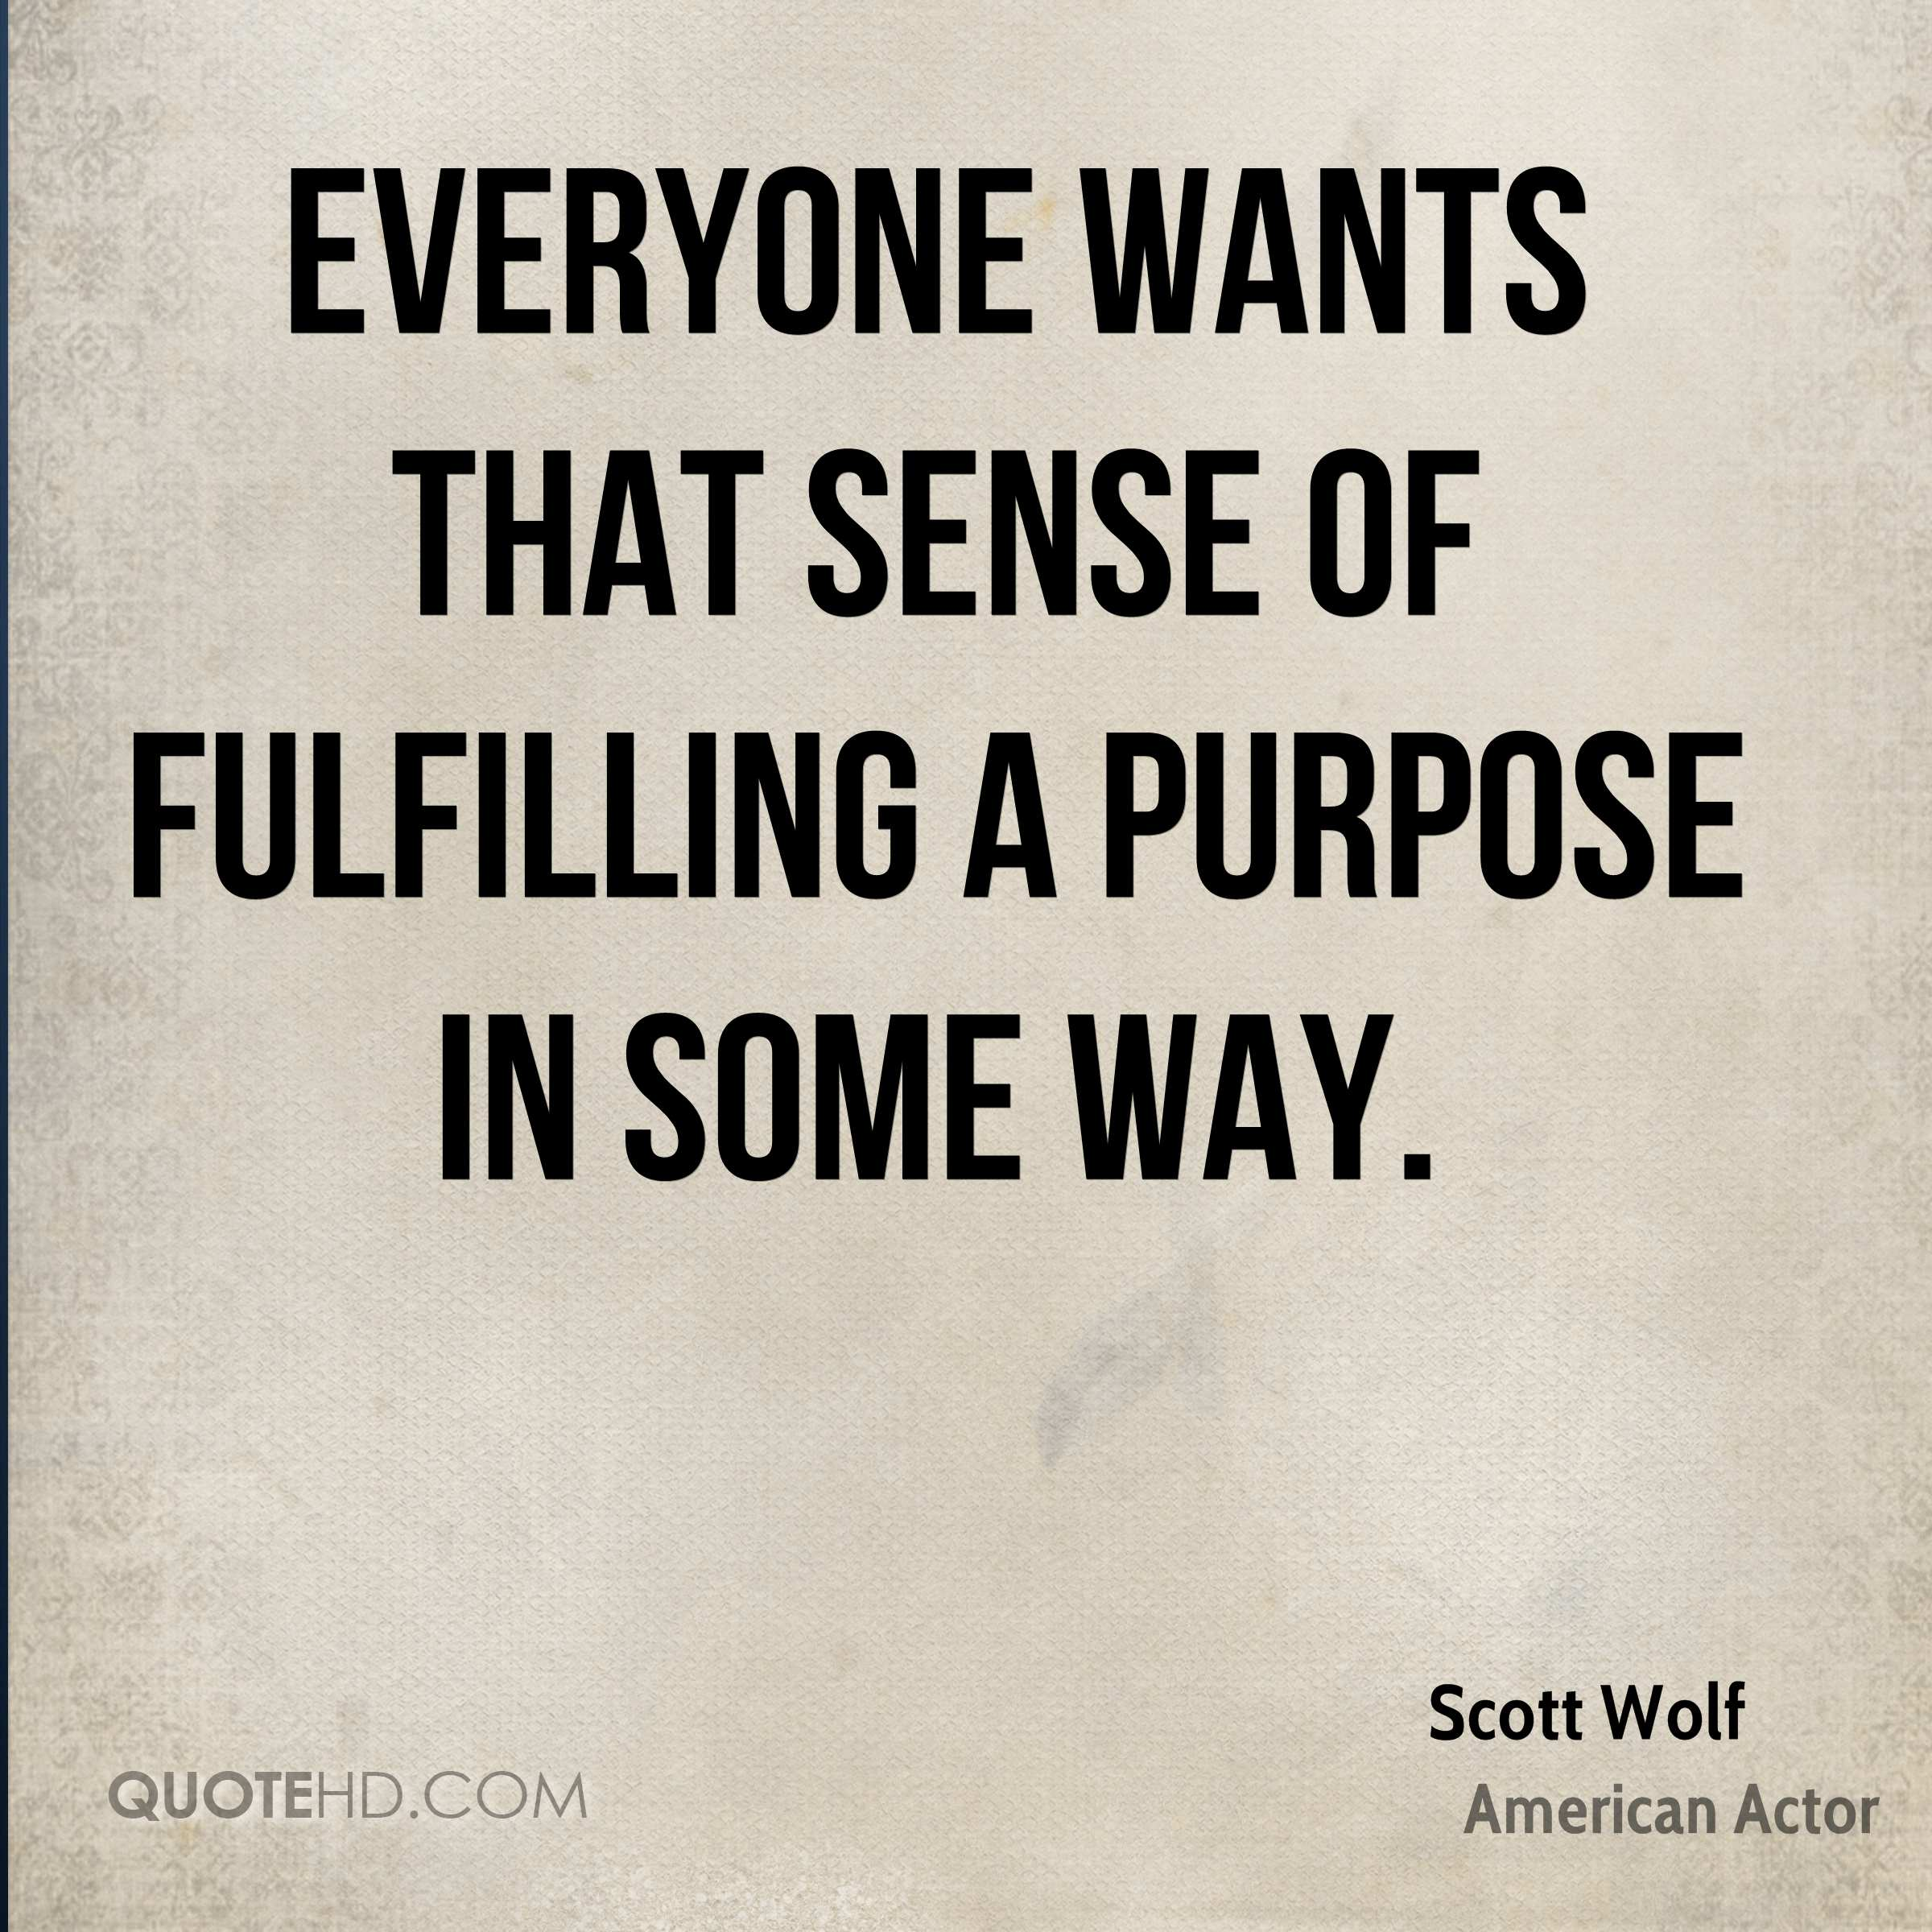 Everyone wants that sense of fulfilling a purpose in some way.